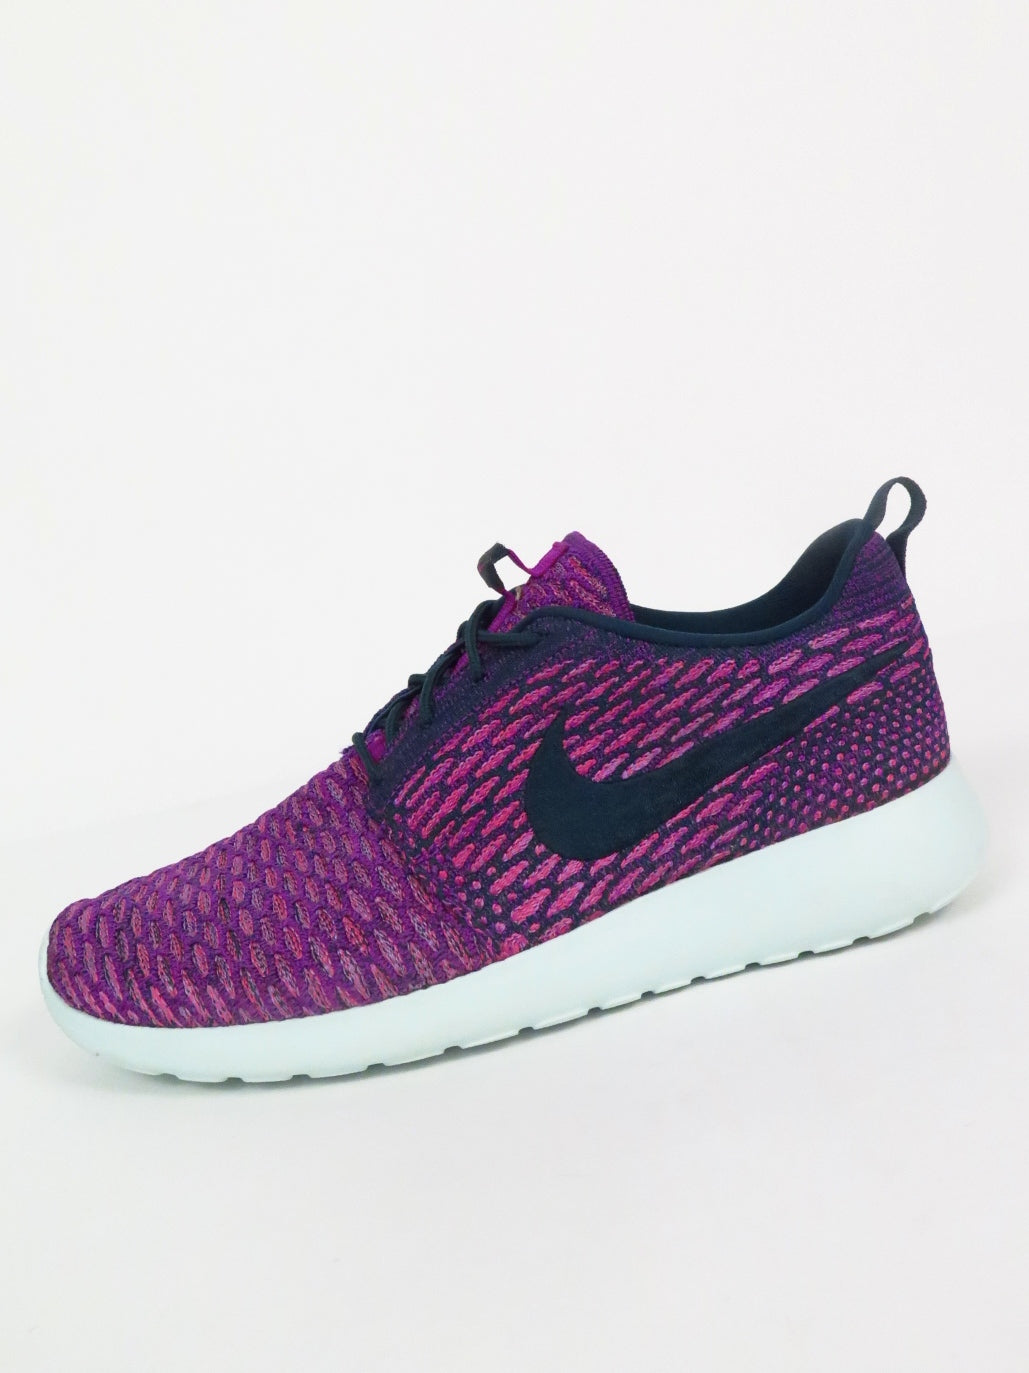 1972d06a77a69 roshe one flyknit 10 – beacon s closet